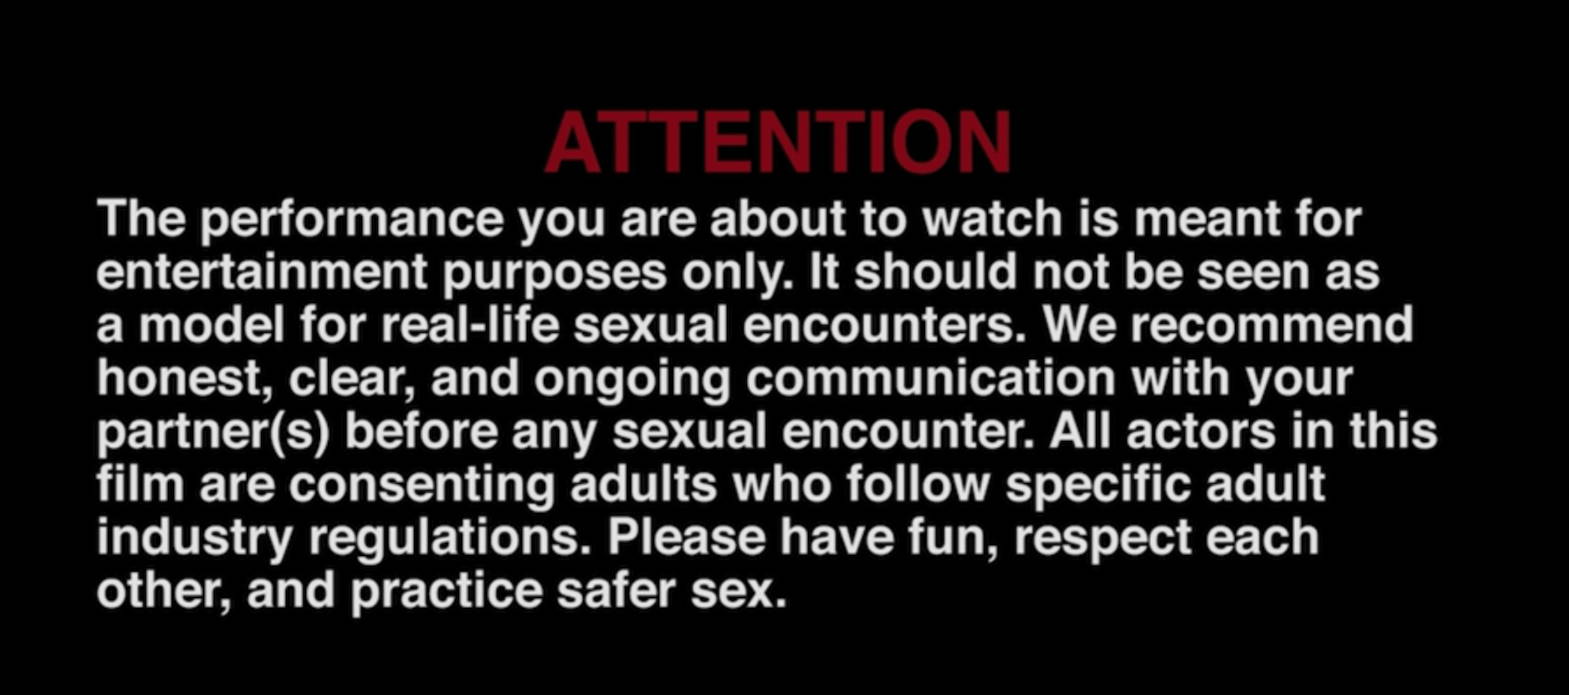 """Note in white text on black background which reads """"The performance you are about to watch is meant for entertainment purposes only. It should not be seen as a model for real-life sexual encounters. We recommend honest, clear and ongoing communication with your partner(s) before any sexual encounter. All actors in this film are consenting adults who follow specific adult industry regulations. Please have fun, respect each other, and practice safer sex."""